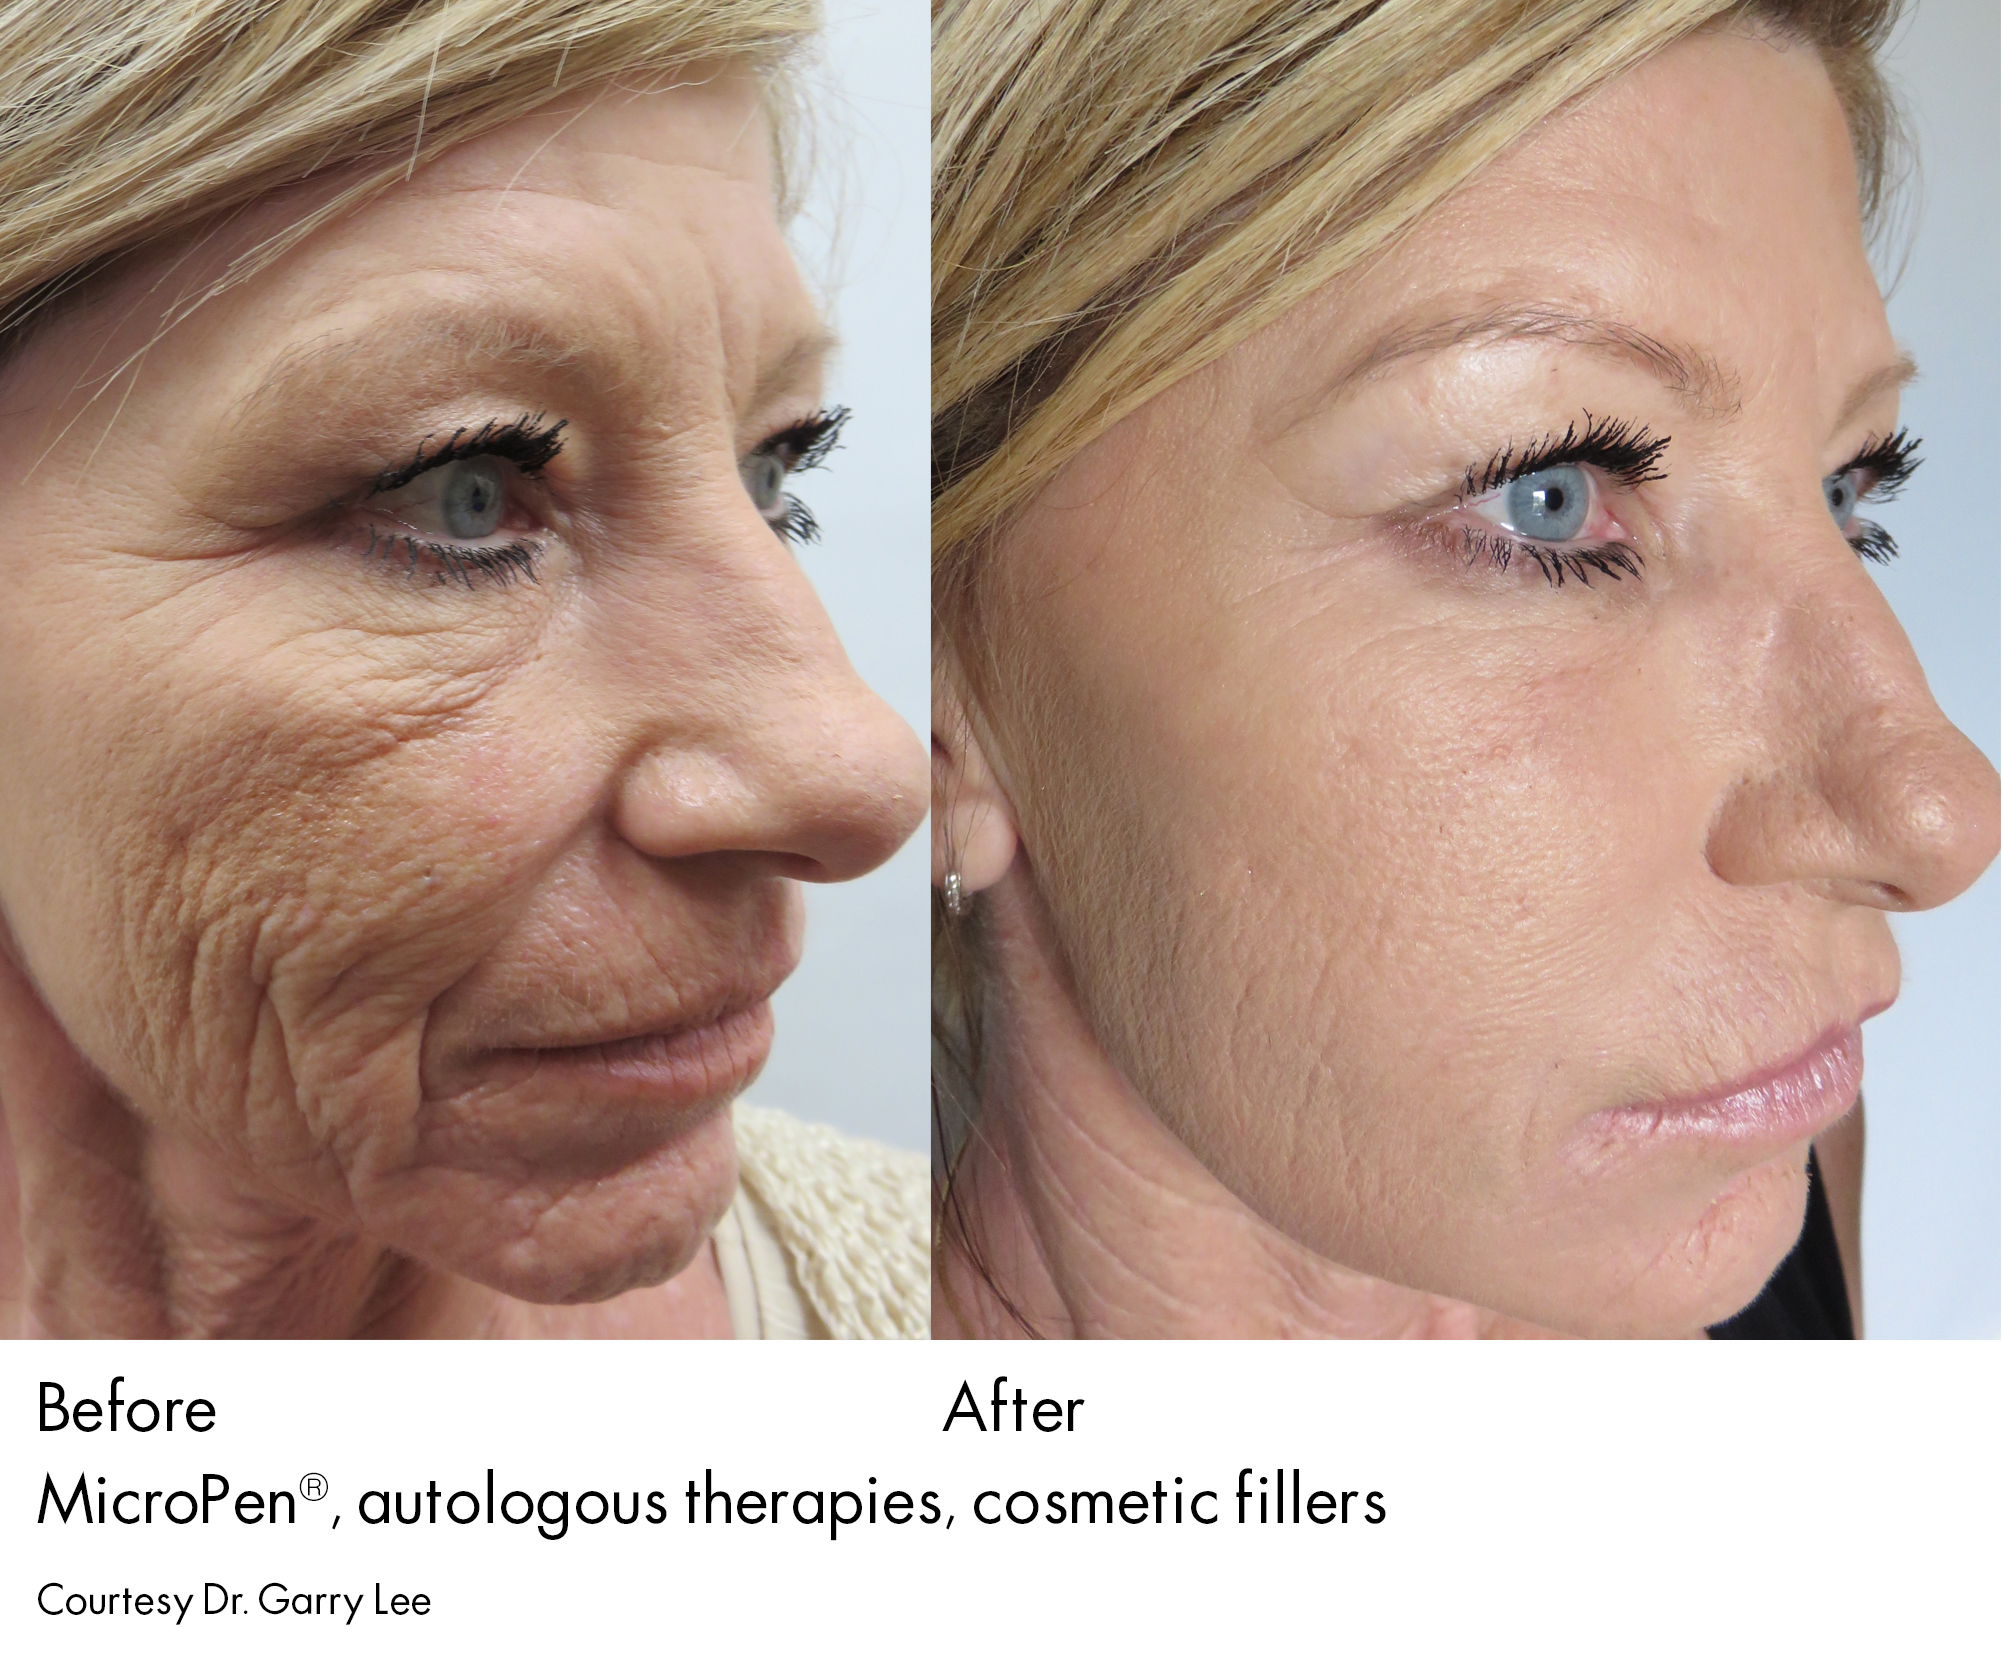 Microneedling (Collagen Induction Therapy) - Serenity MedSpa